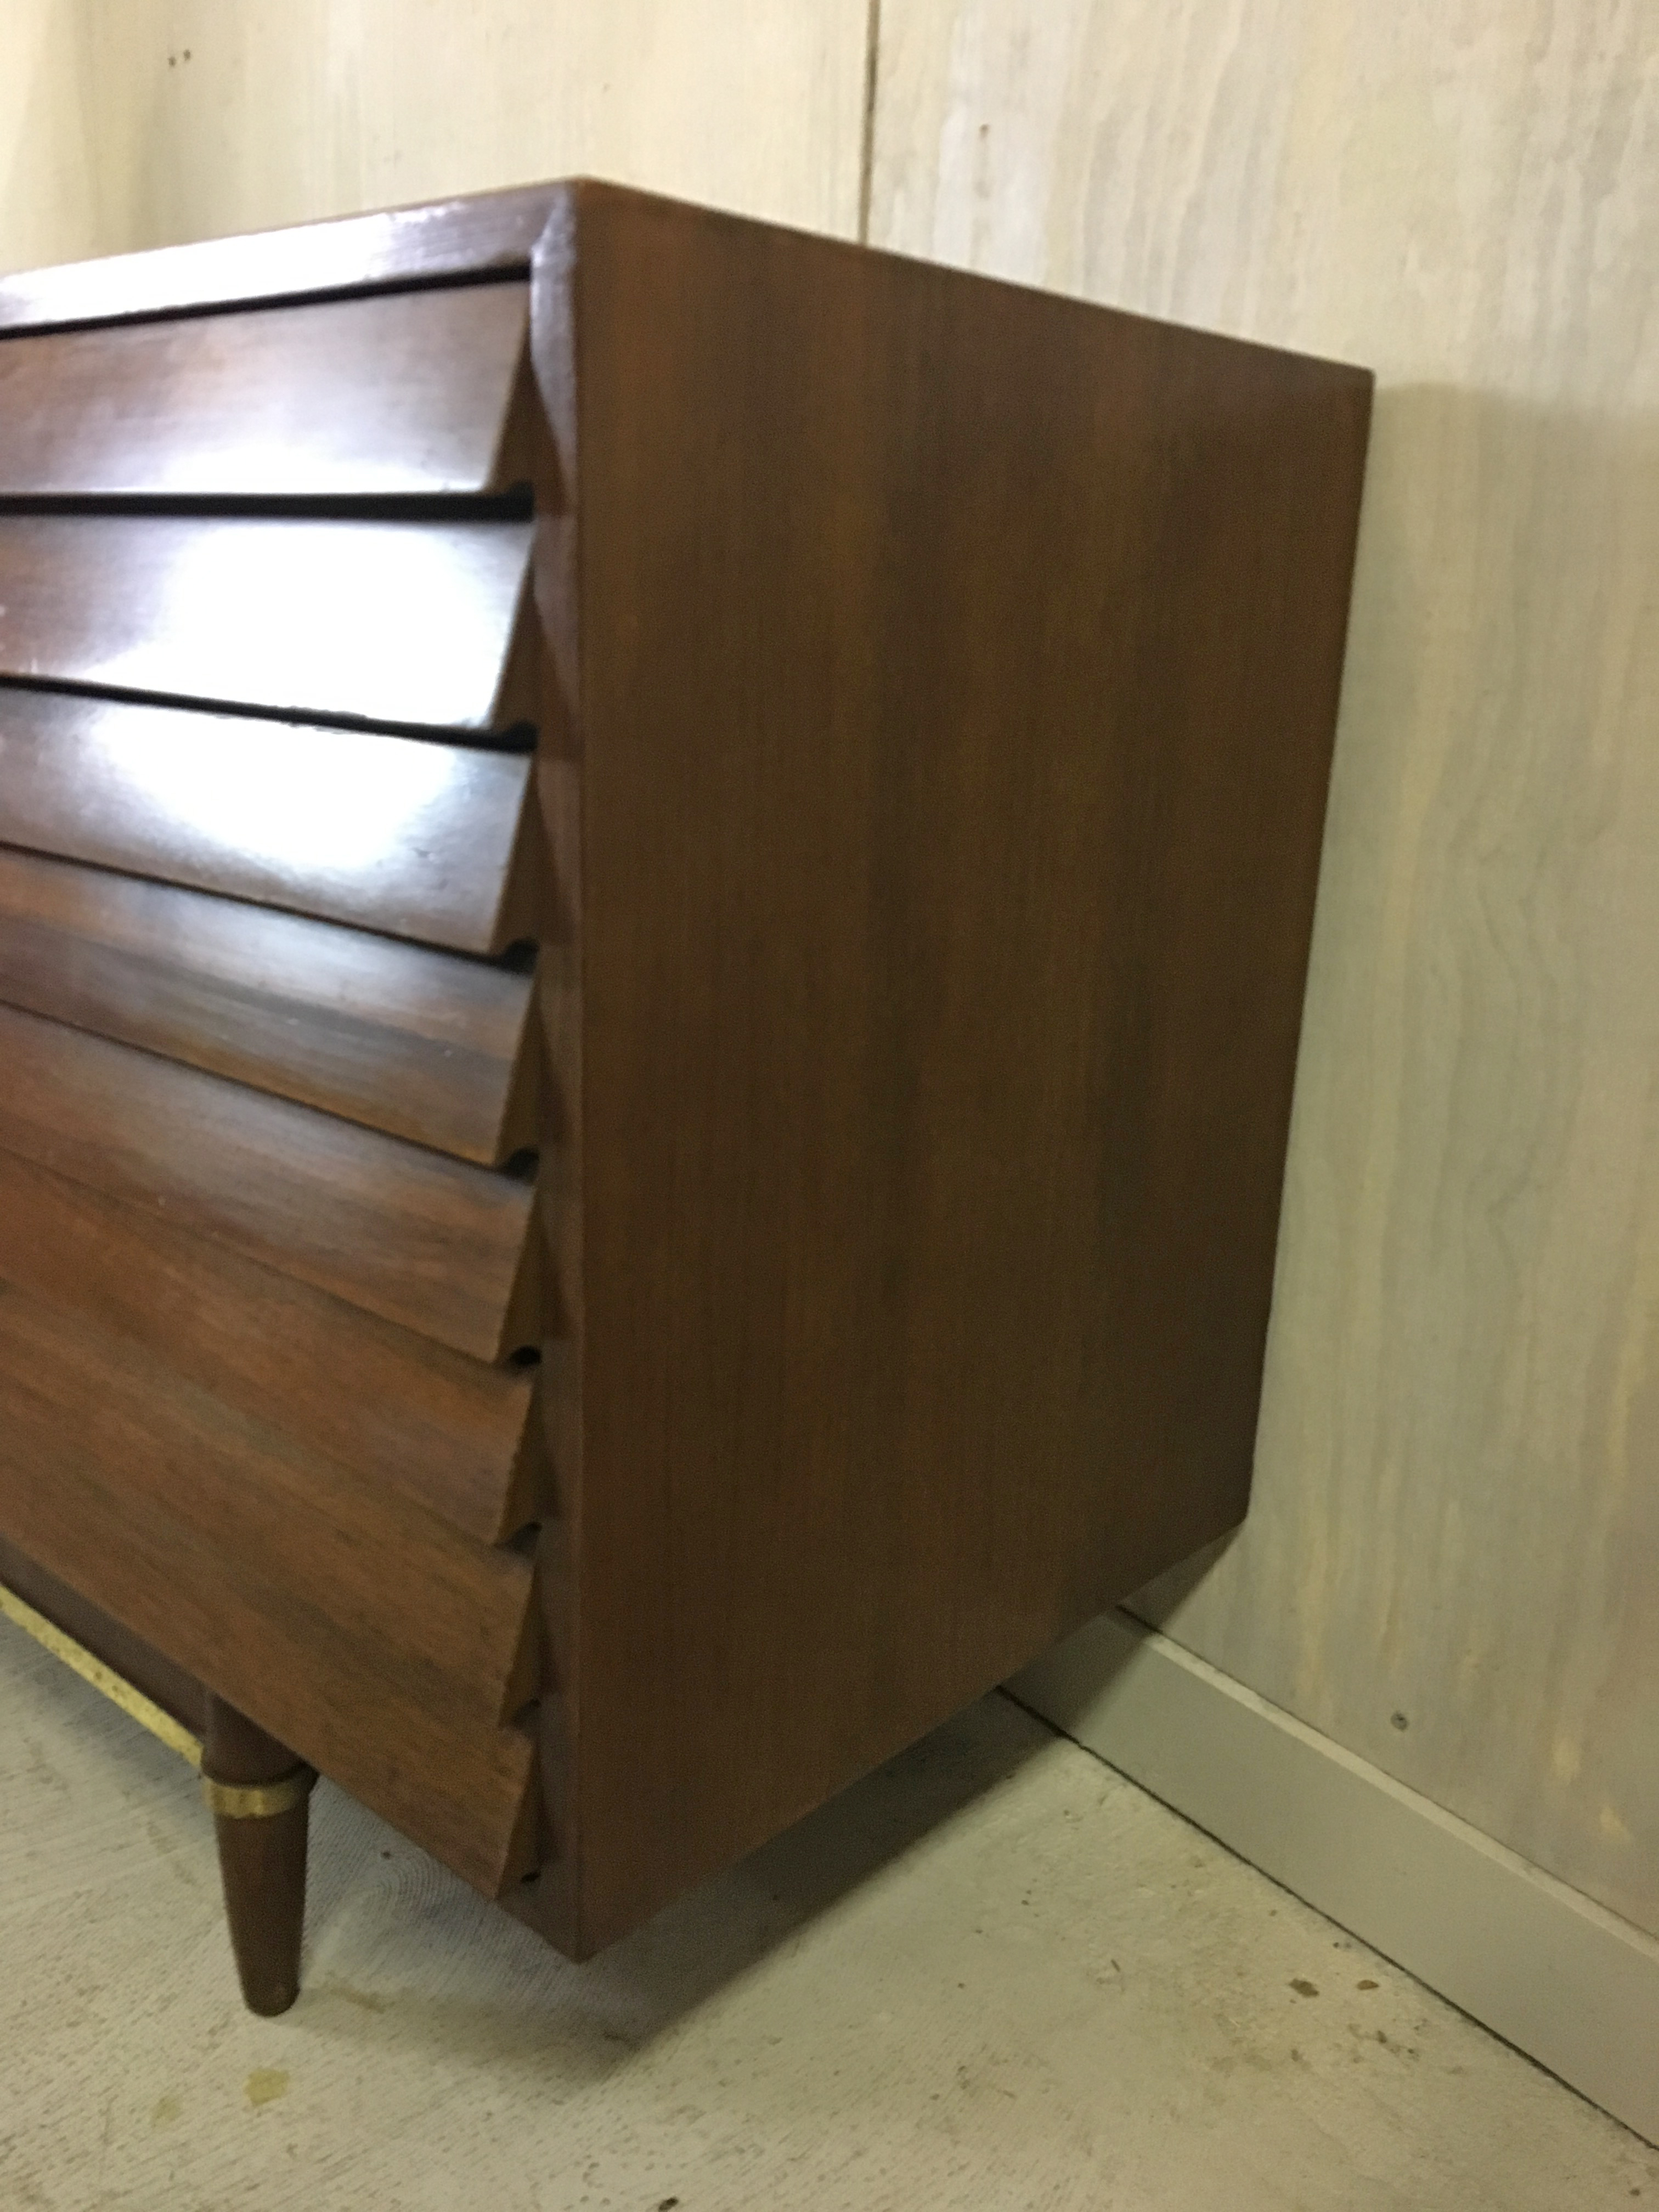 SALE - Dania Lowboy Dresser for American of Martinsville by Merton Gershun